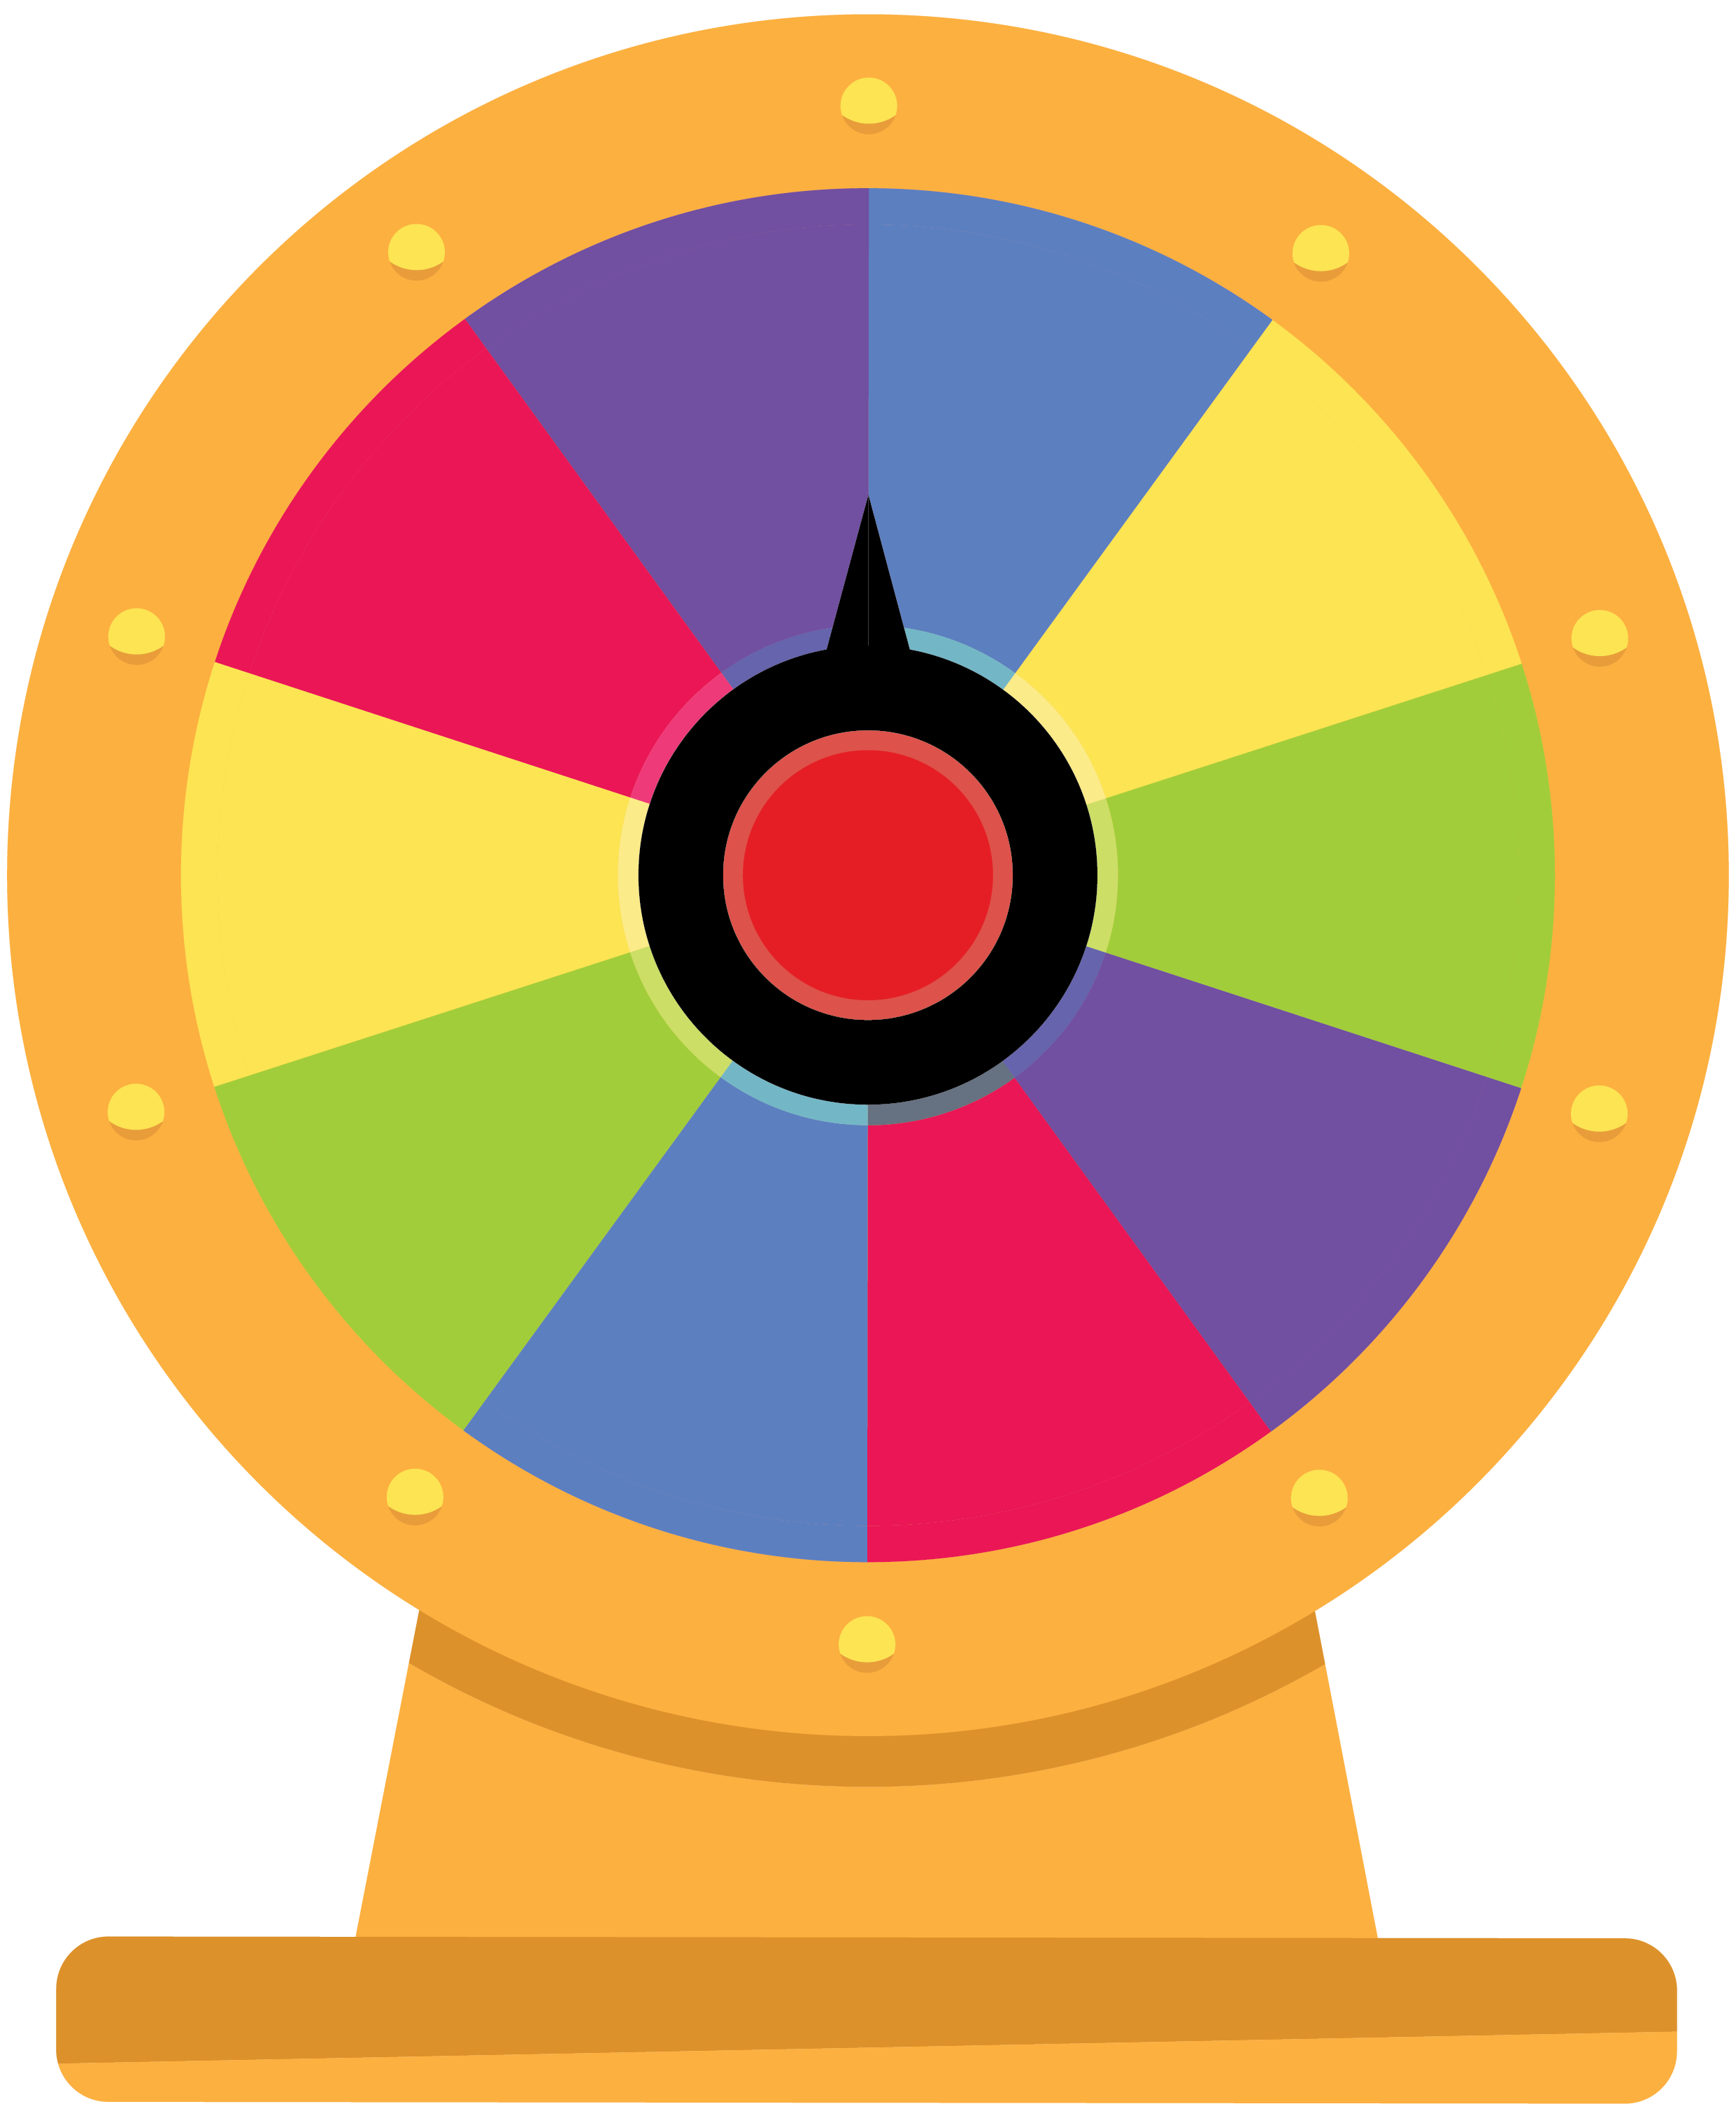 transparent stock  images of to. Spin the wheel clipart